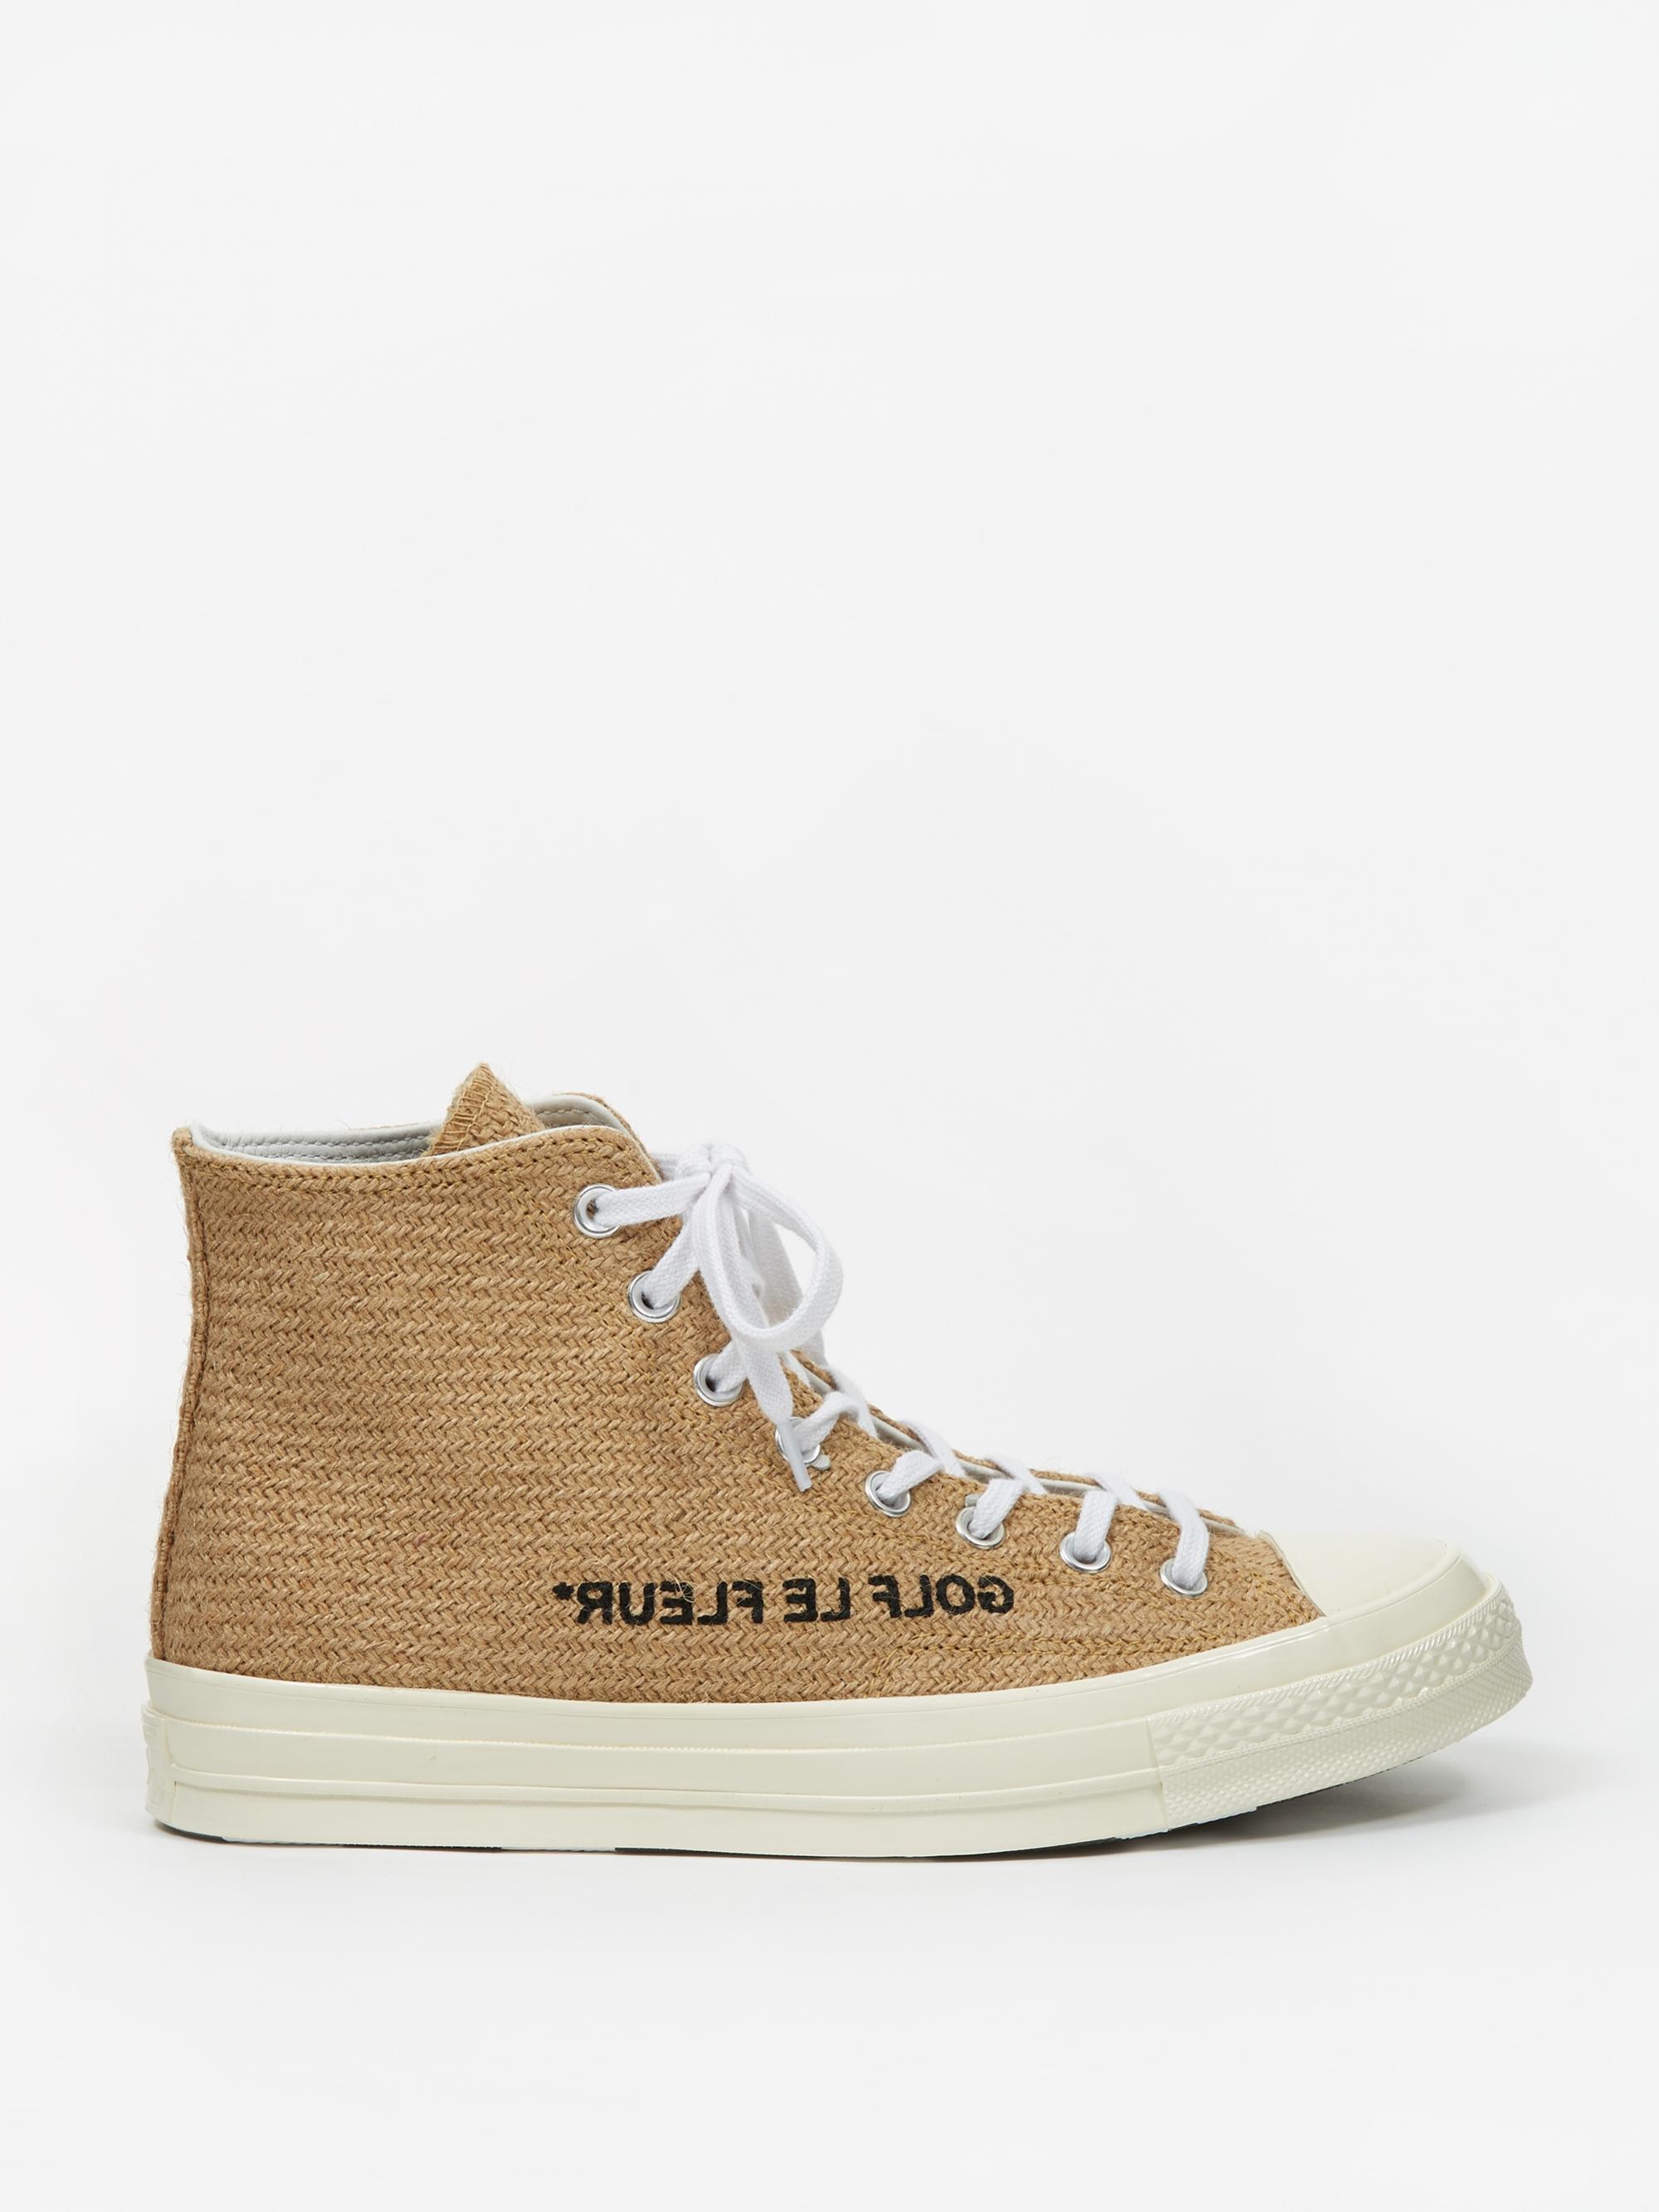 0e4fd4fe1010 Converse x Golf Le Fleur Chuck Taylor All Star 70 Hi - Curry